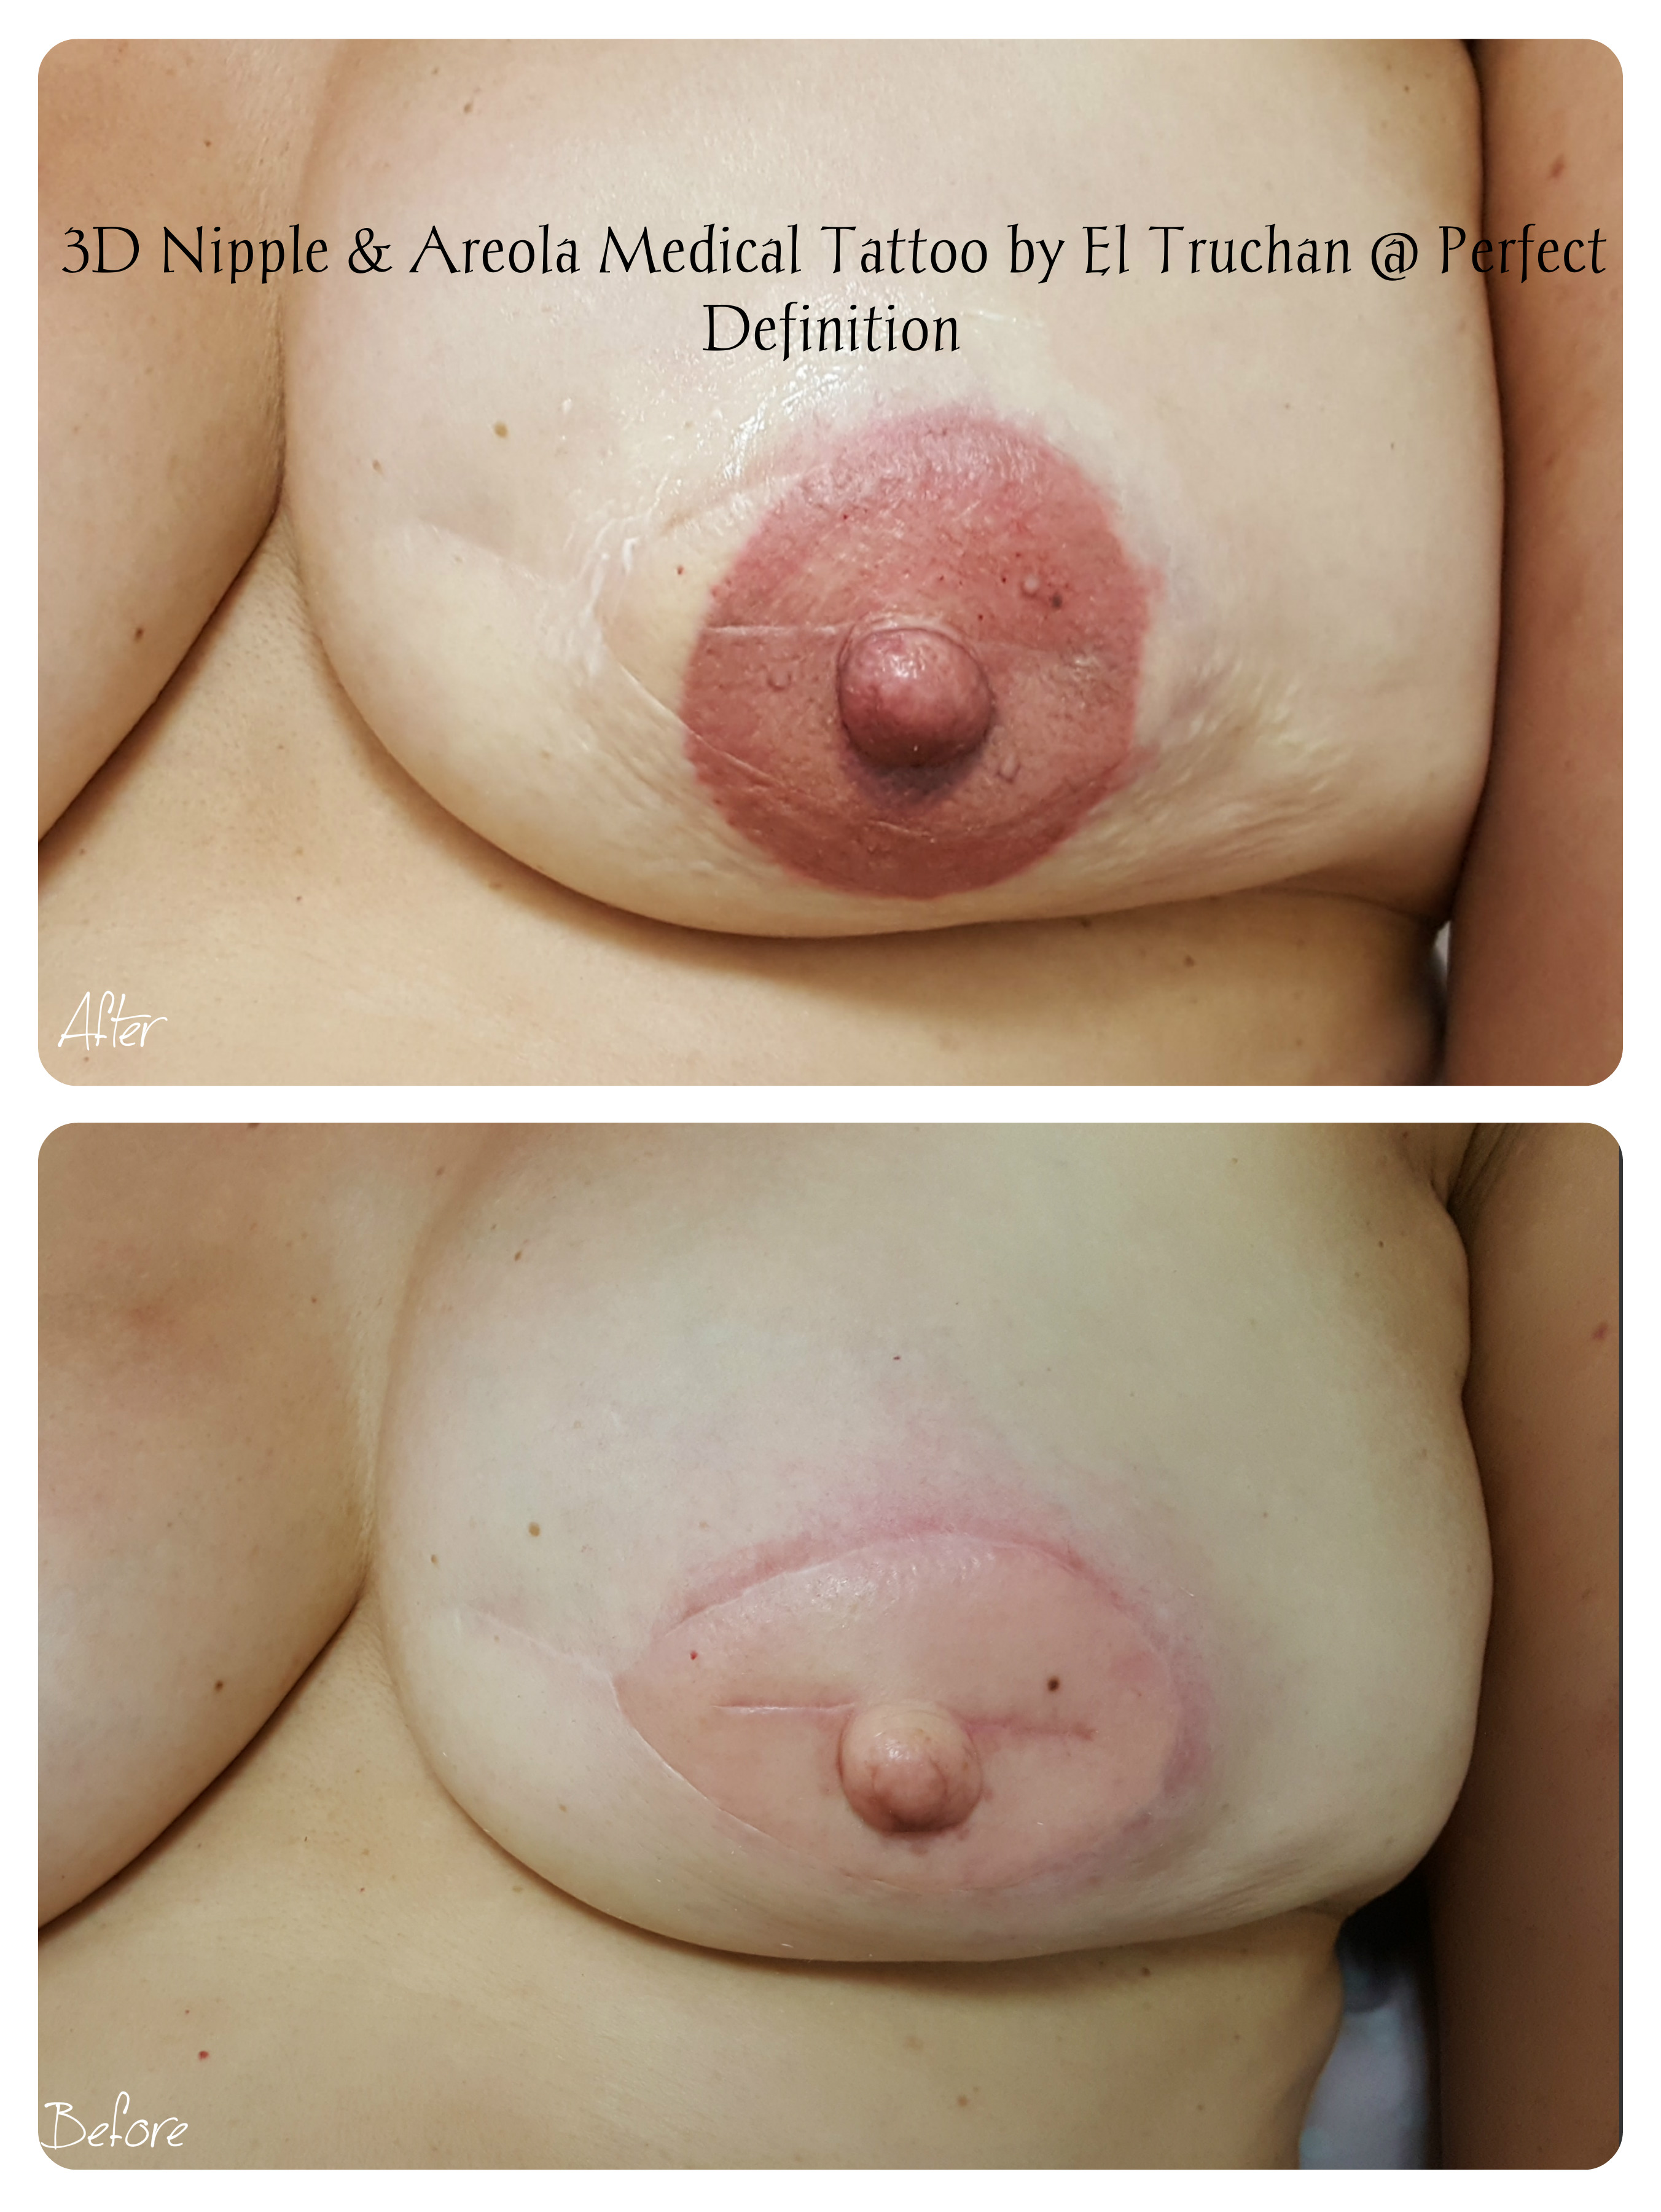 3D Nipple & Areola Reconstruction medical tattoo by El Truchan _ Perfect Definition